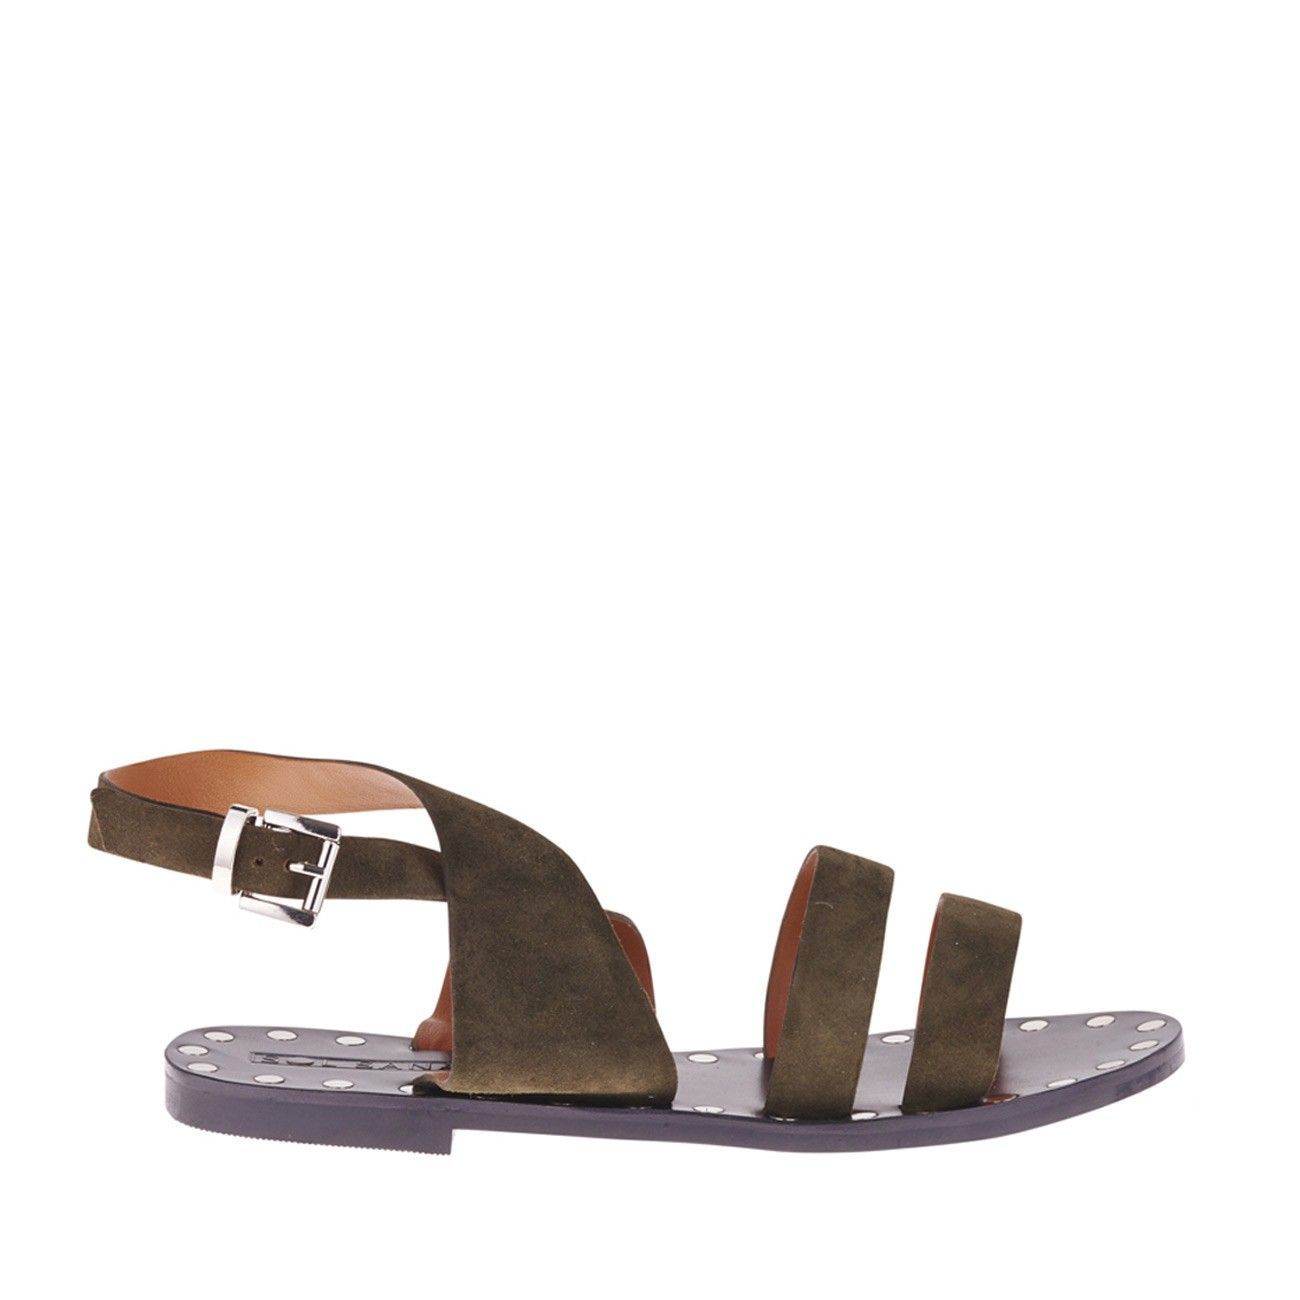 Sol Sana Vivian Sandal | Sole Society Shoes, Bags and Accessories